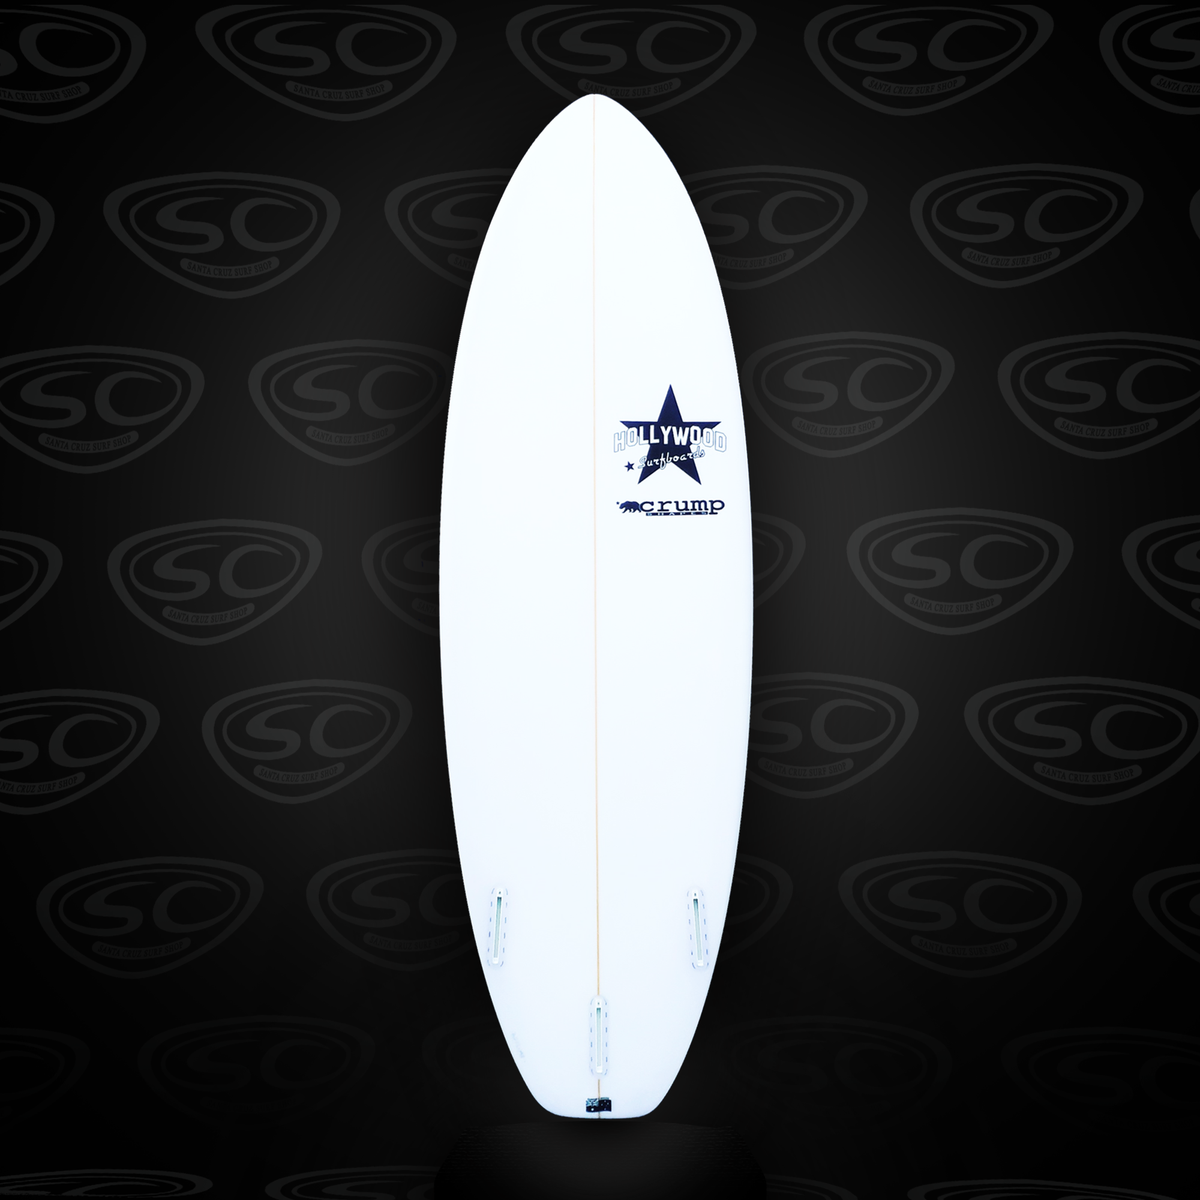 Hollywood Limo Surfboard - Santa Cruz Surf Shop™